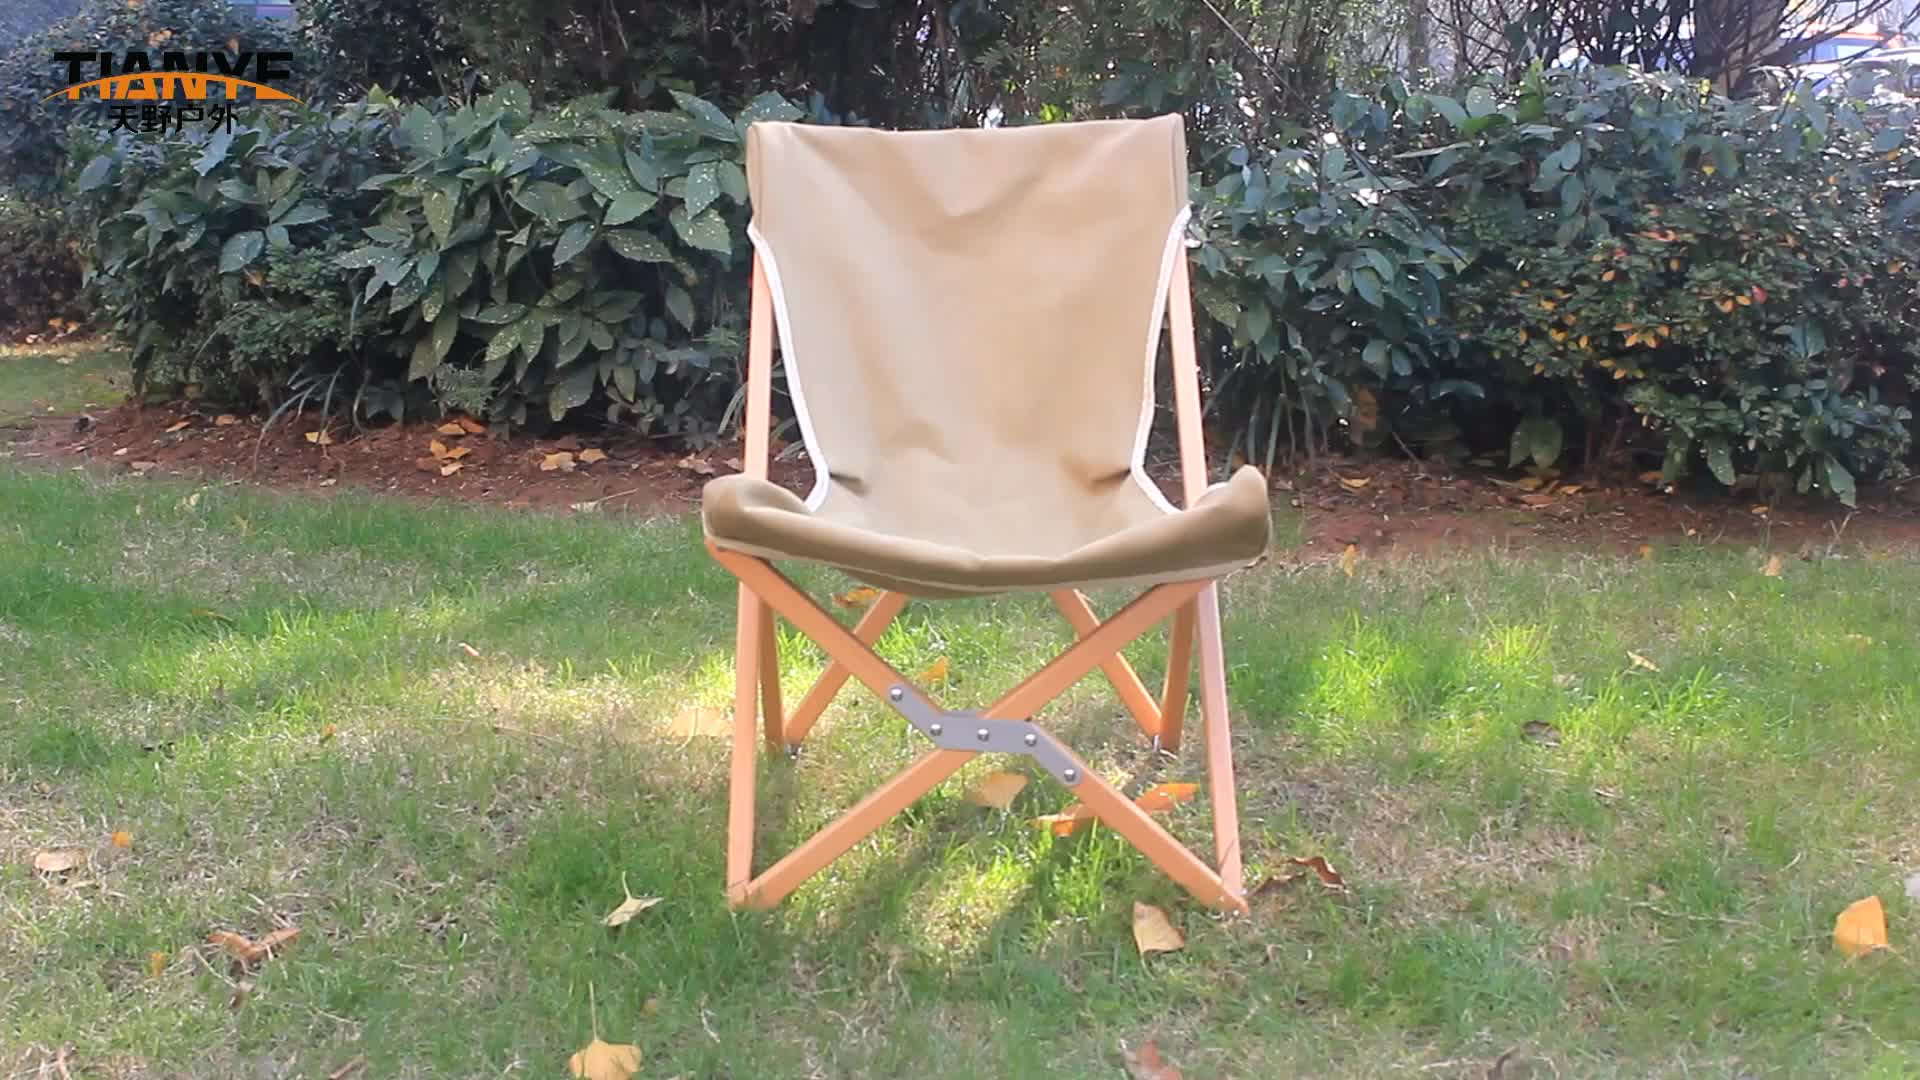 Tianye outdoor wood folding portable canvas deck chair